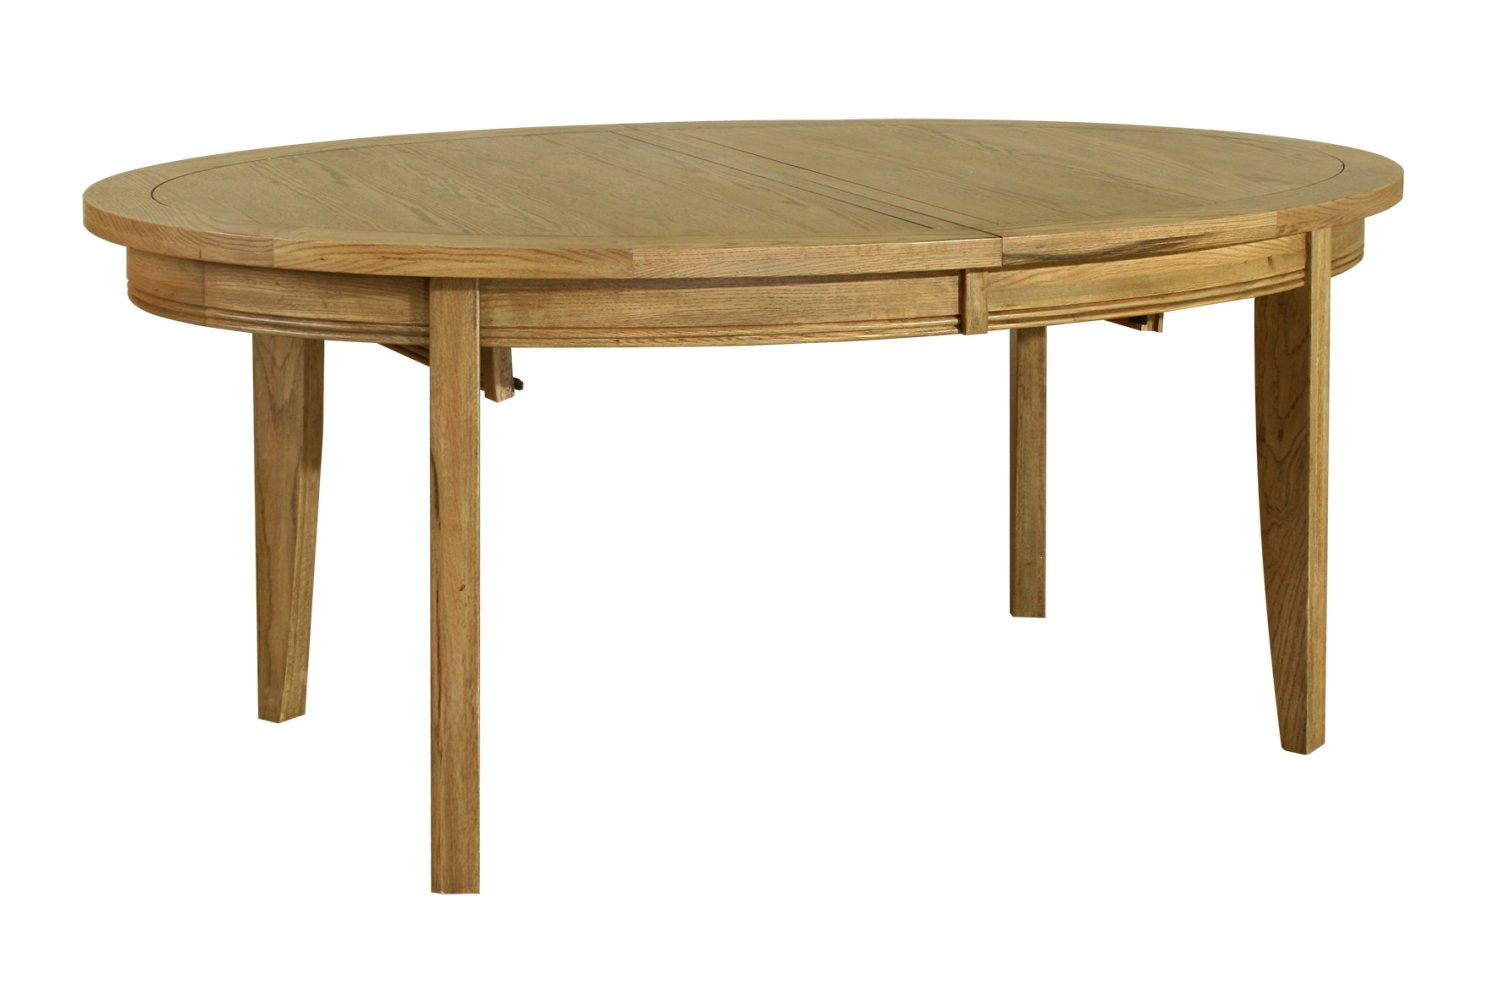 Linden Solid Oak Dining Room Furniture Oval Extending Dining Table